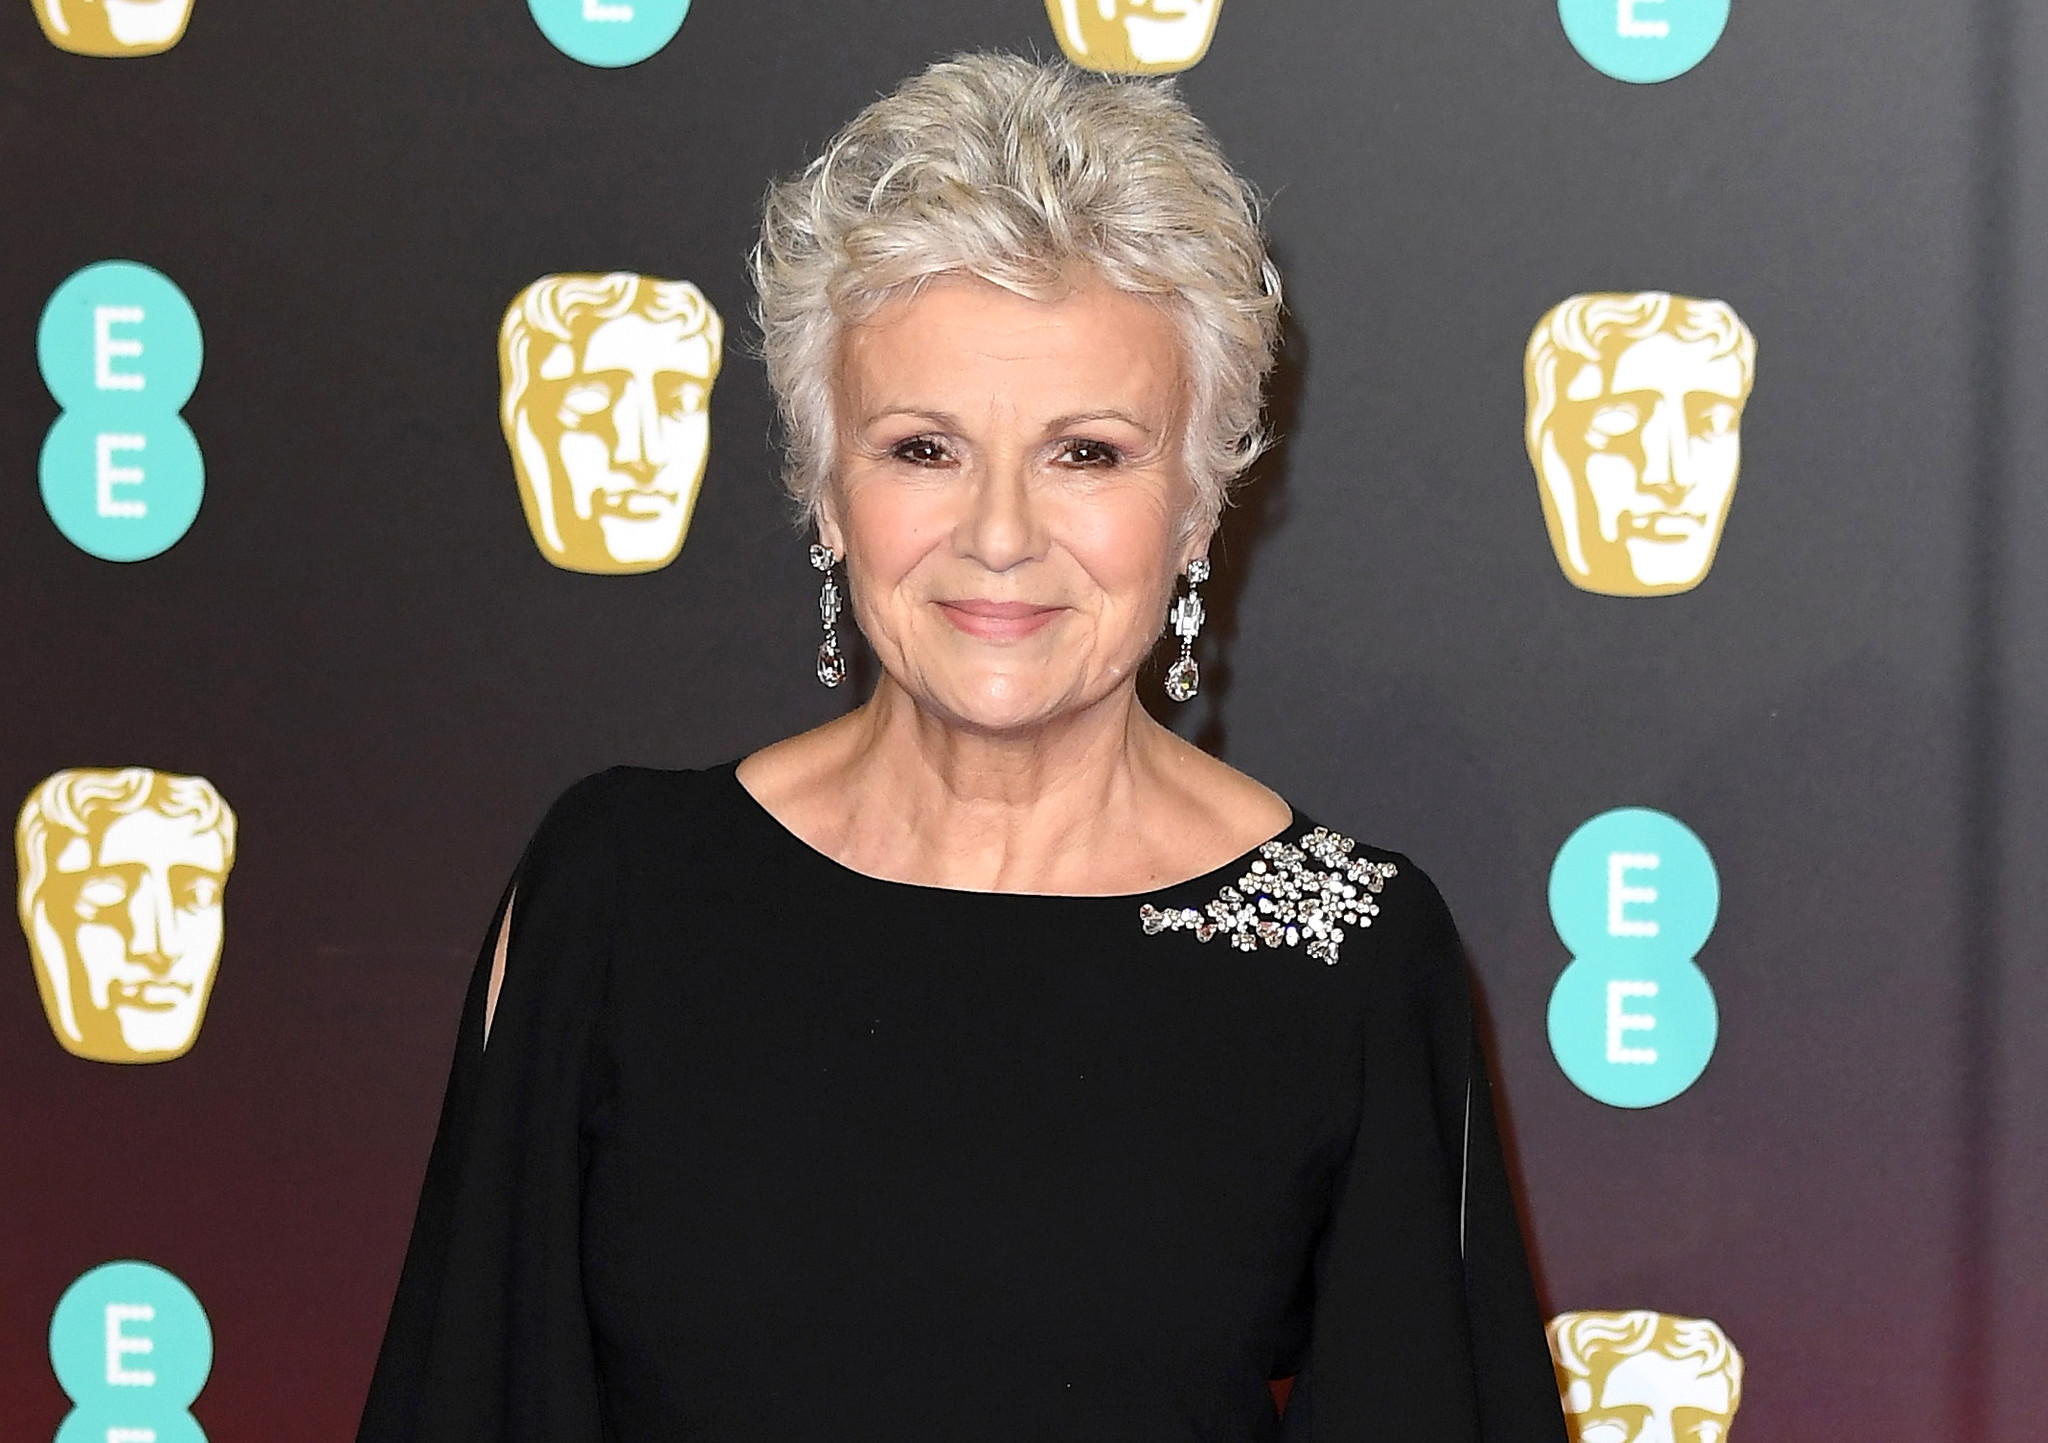 Julie Walters, two-time Oscar nominee, reveals she battled stage 3 bowel cancer